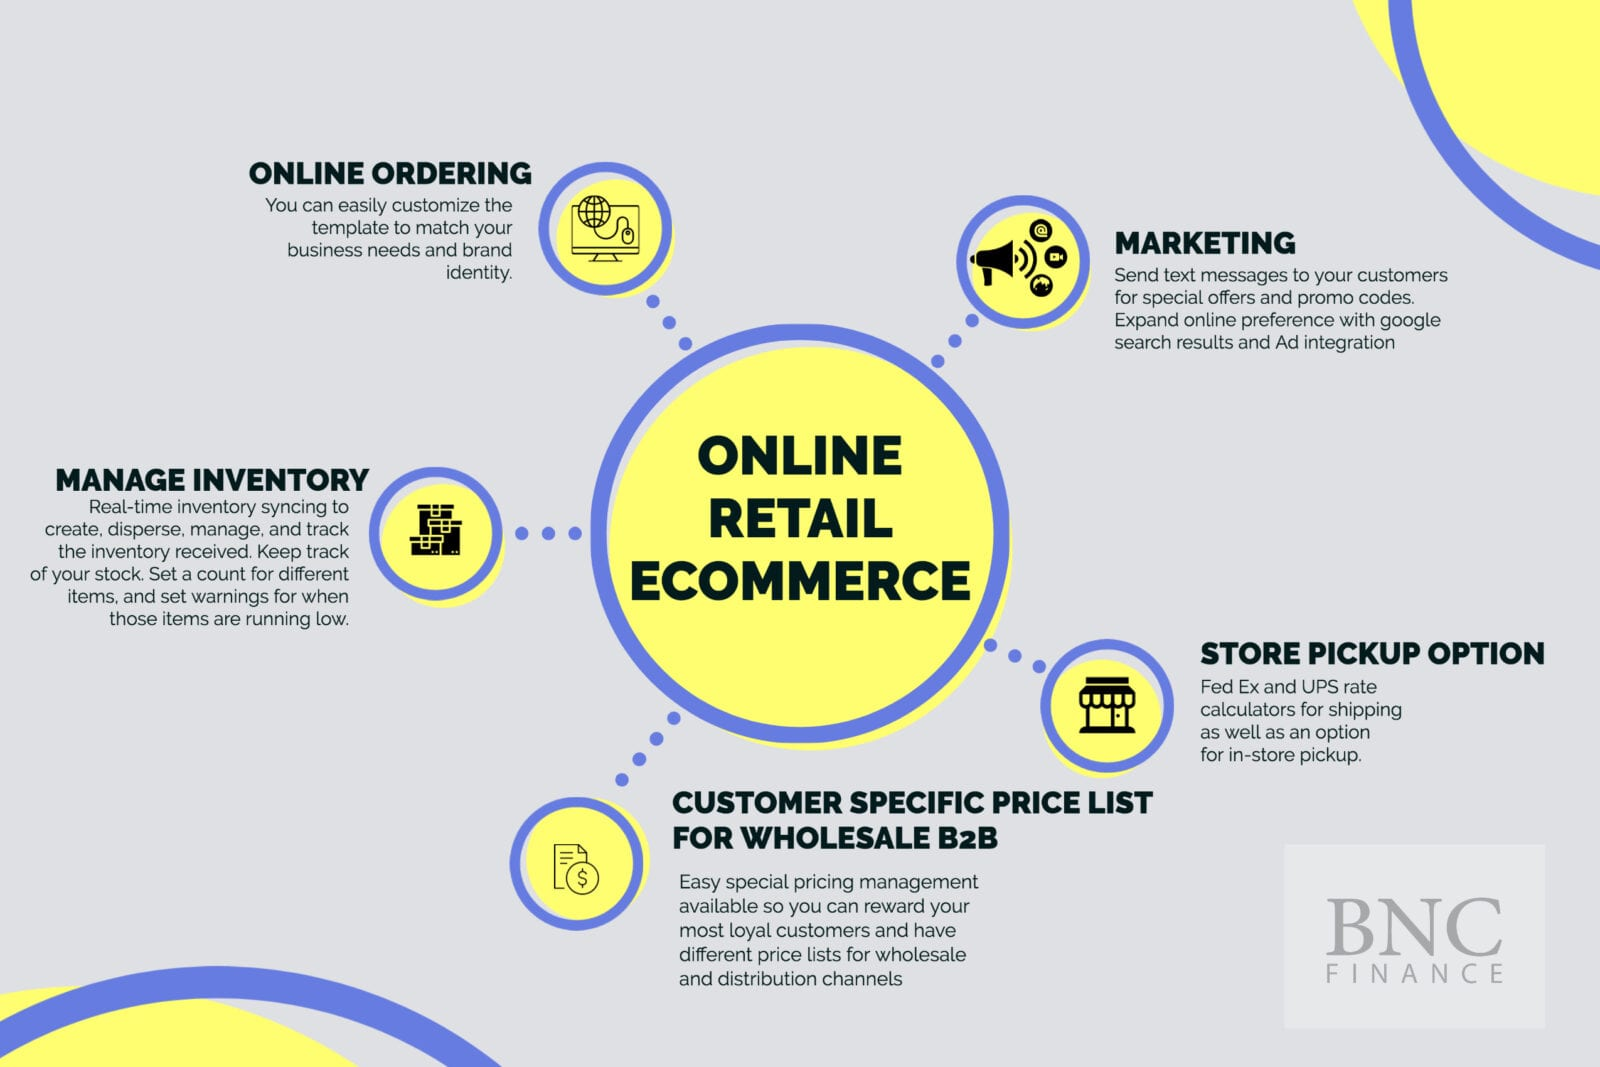 Online Retail Ecommerce Point of Sale Solution